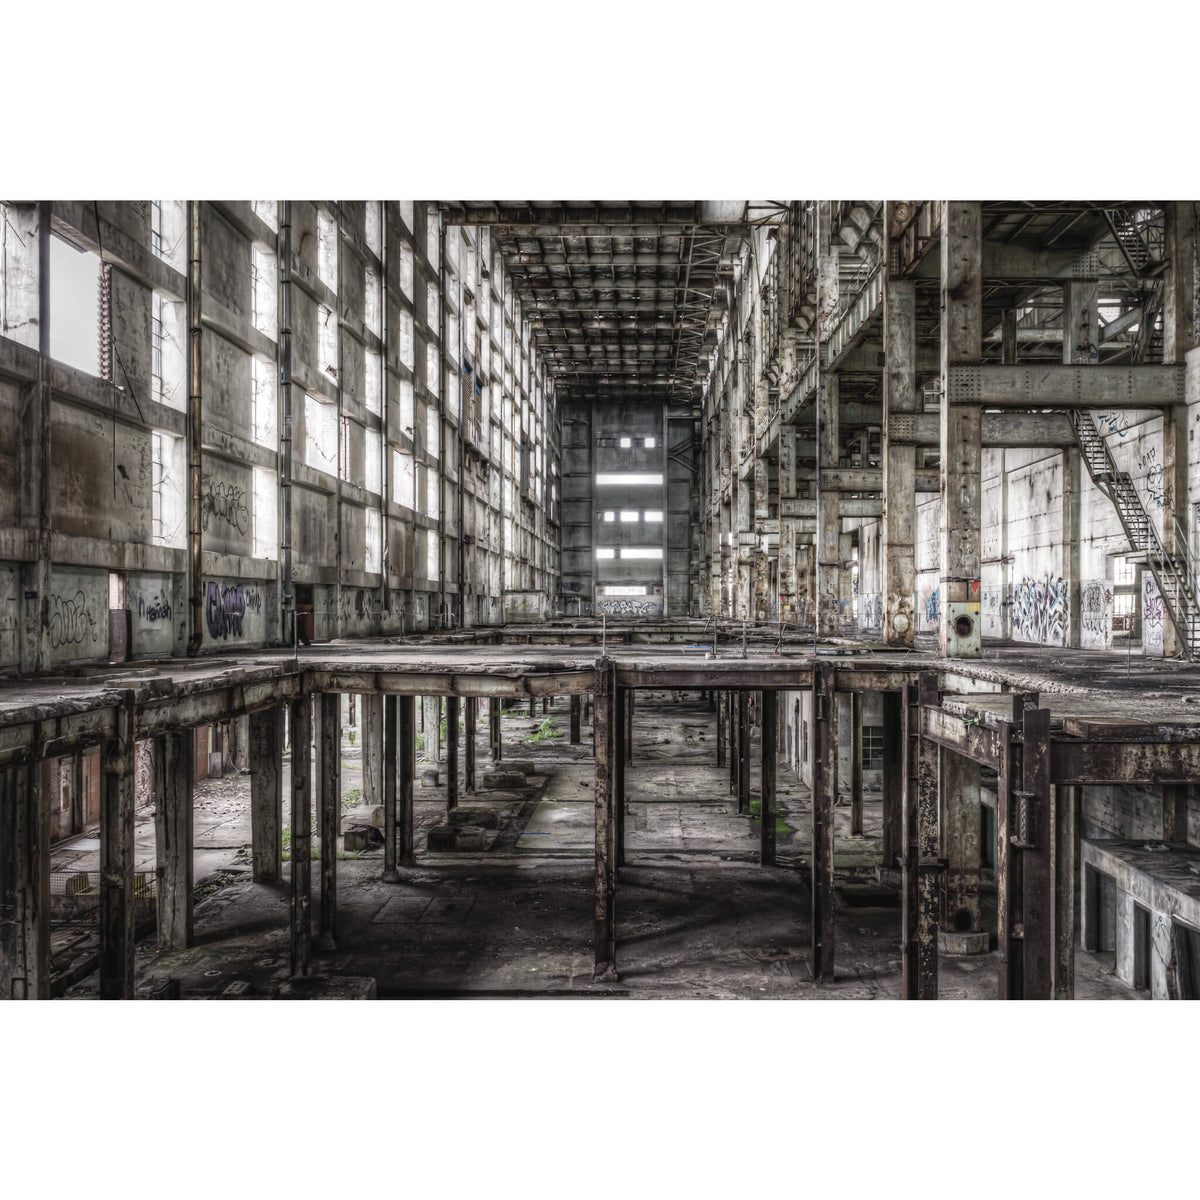 Boiler House Looking From A Station To B | Wangi Power Station Fine Art Print - Lost Collective Shop